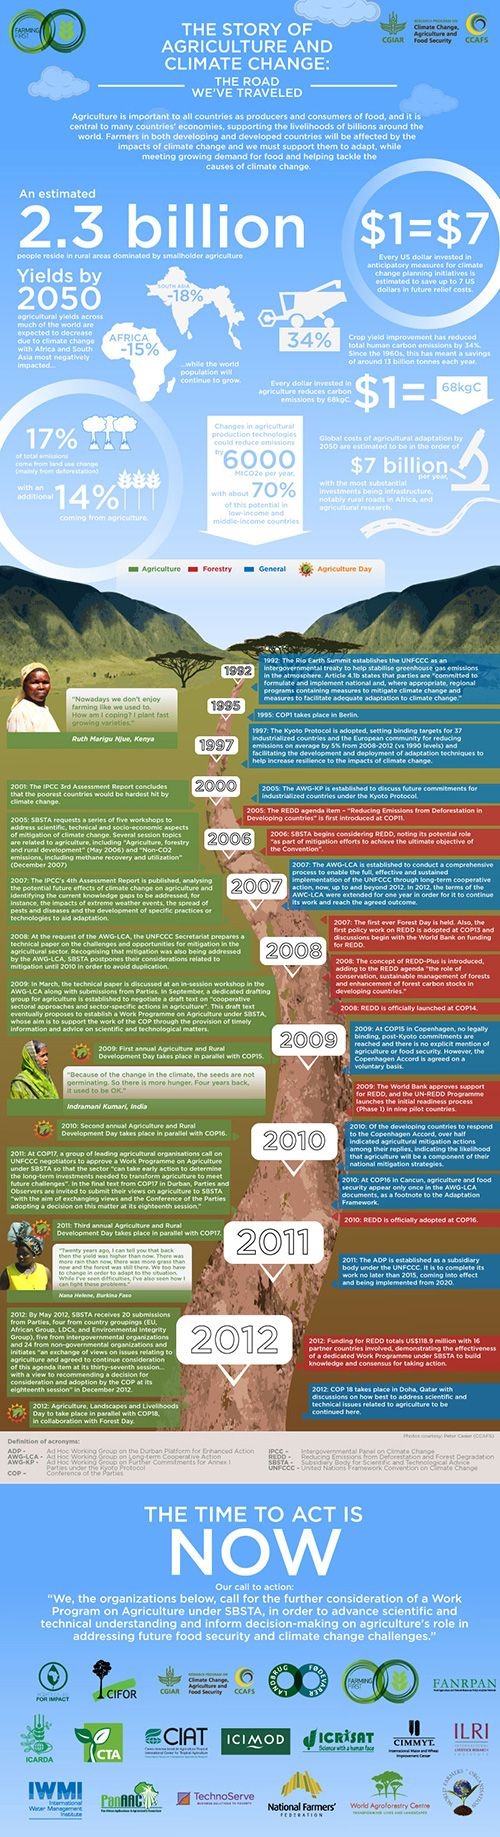 Charting the history of agriculture and climate change – Infographics